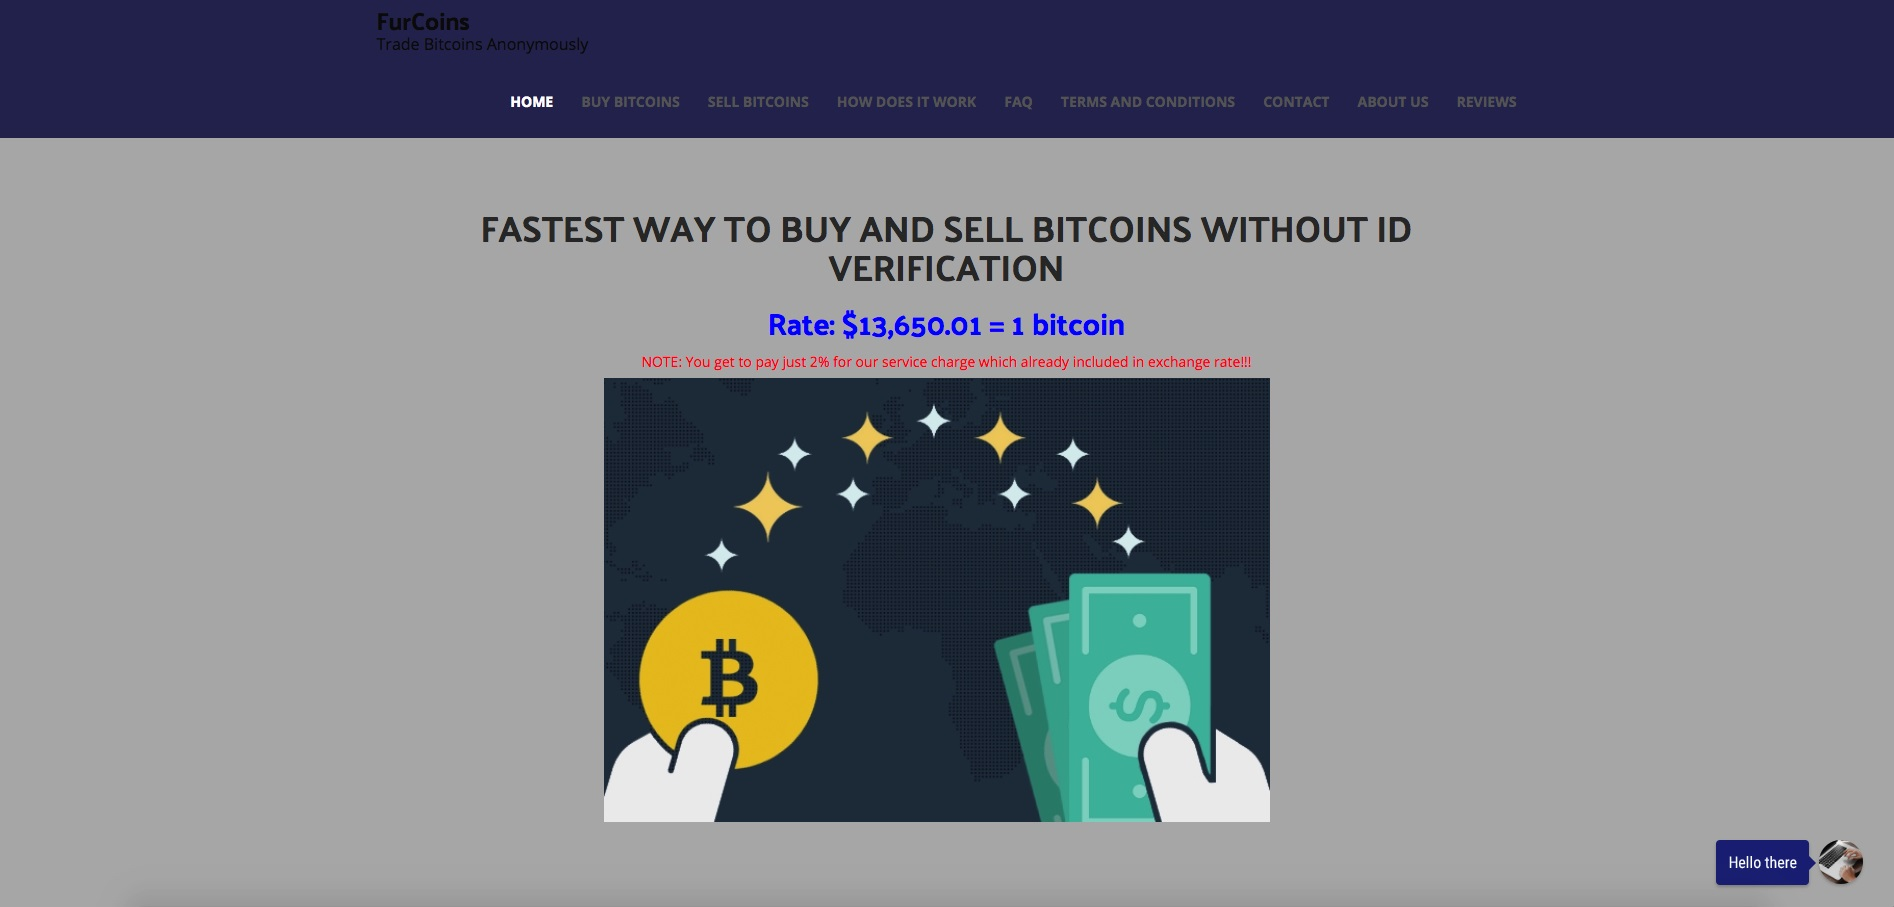 Furcoins review anonymous bitcoin trading hoax scam bitcoin furcoins ccuart Gallery